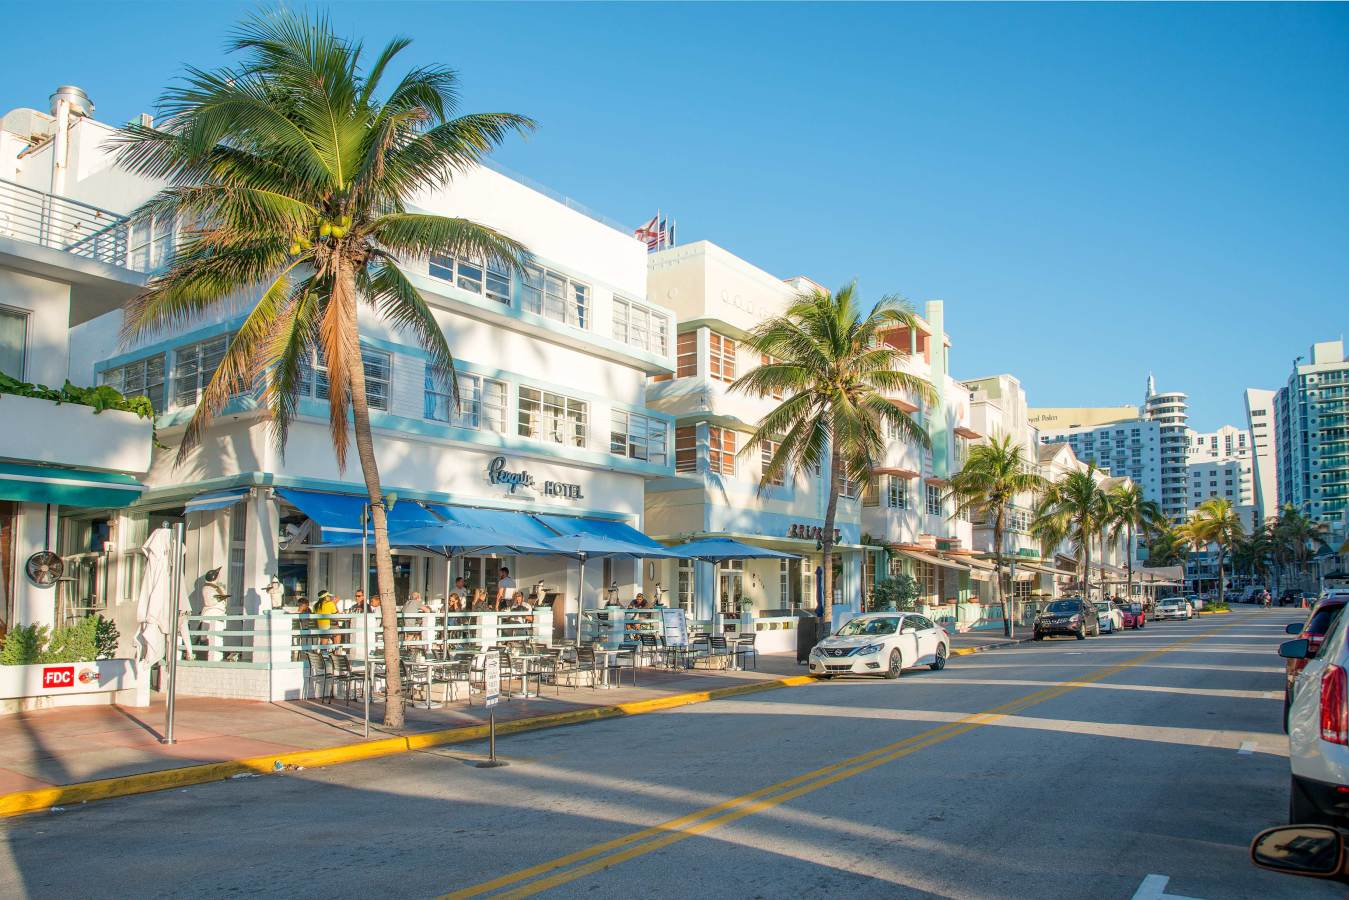 Penguin Hotel Street View on Ocean Drive